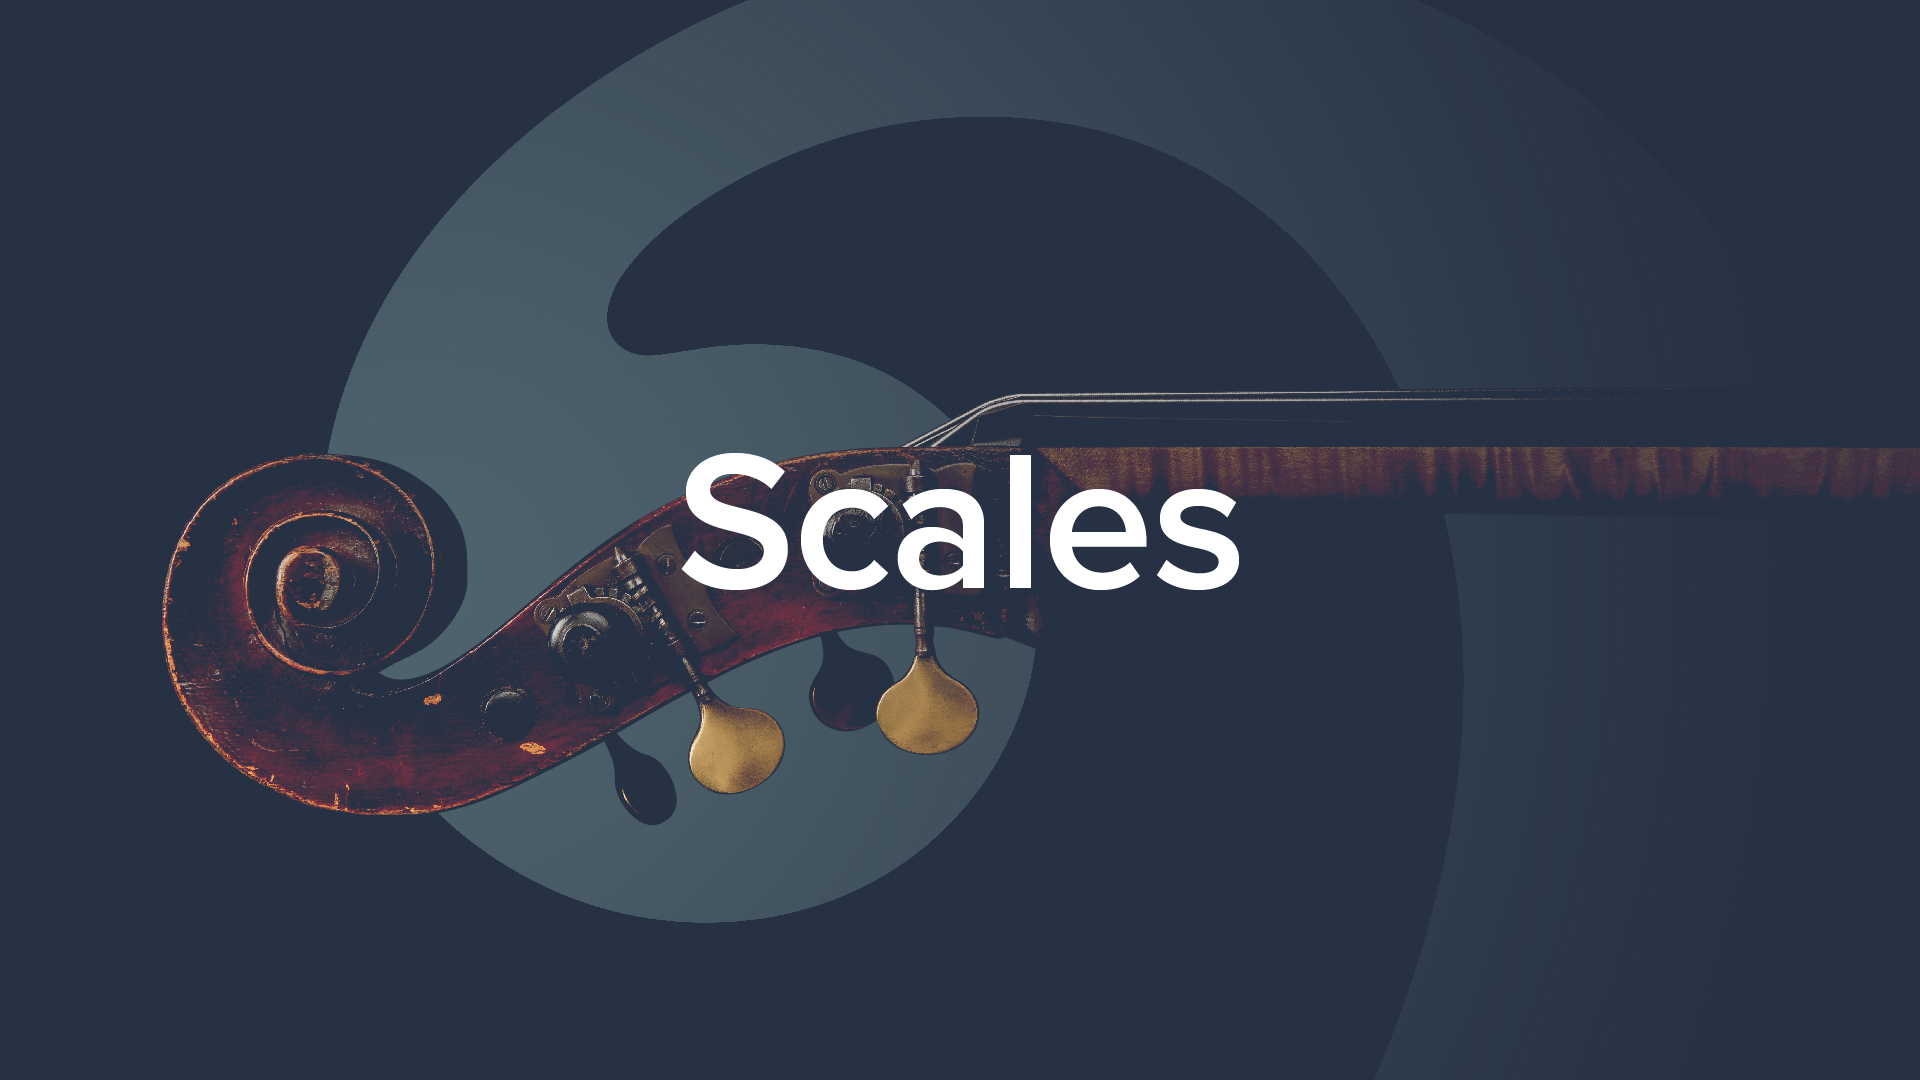 Double Bass Scales - Geoff Chalmers